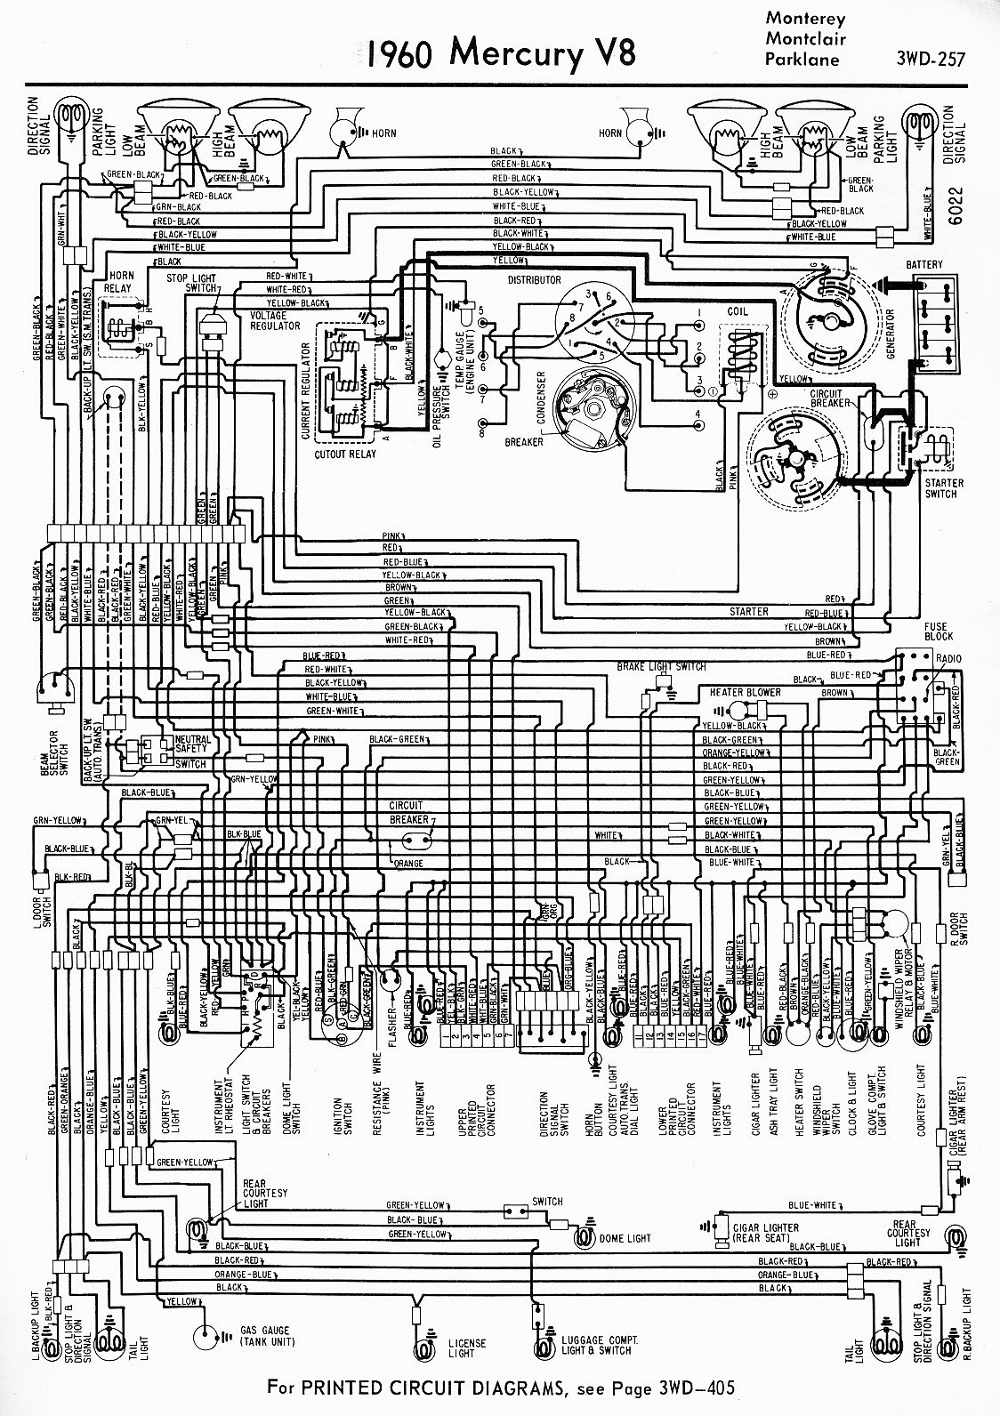 ic bus crossing arm wiring diagram schematic diagram rh 112 wihado de